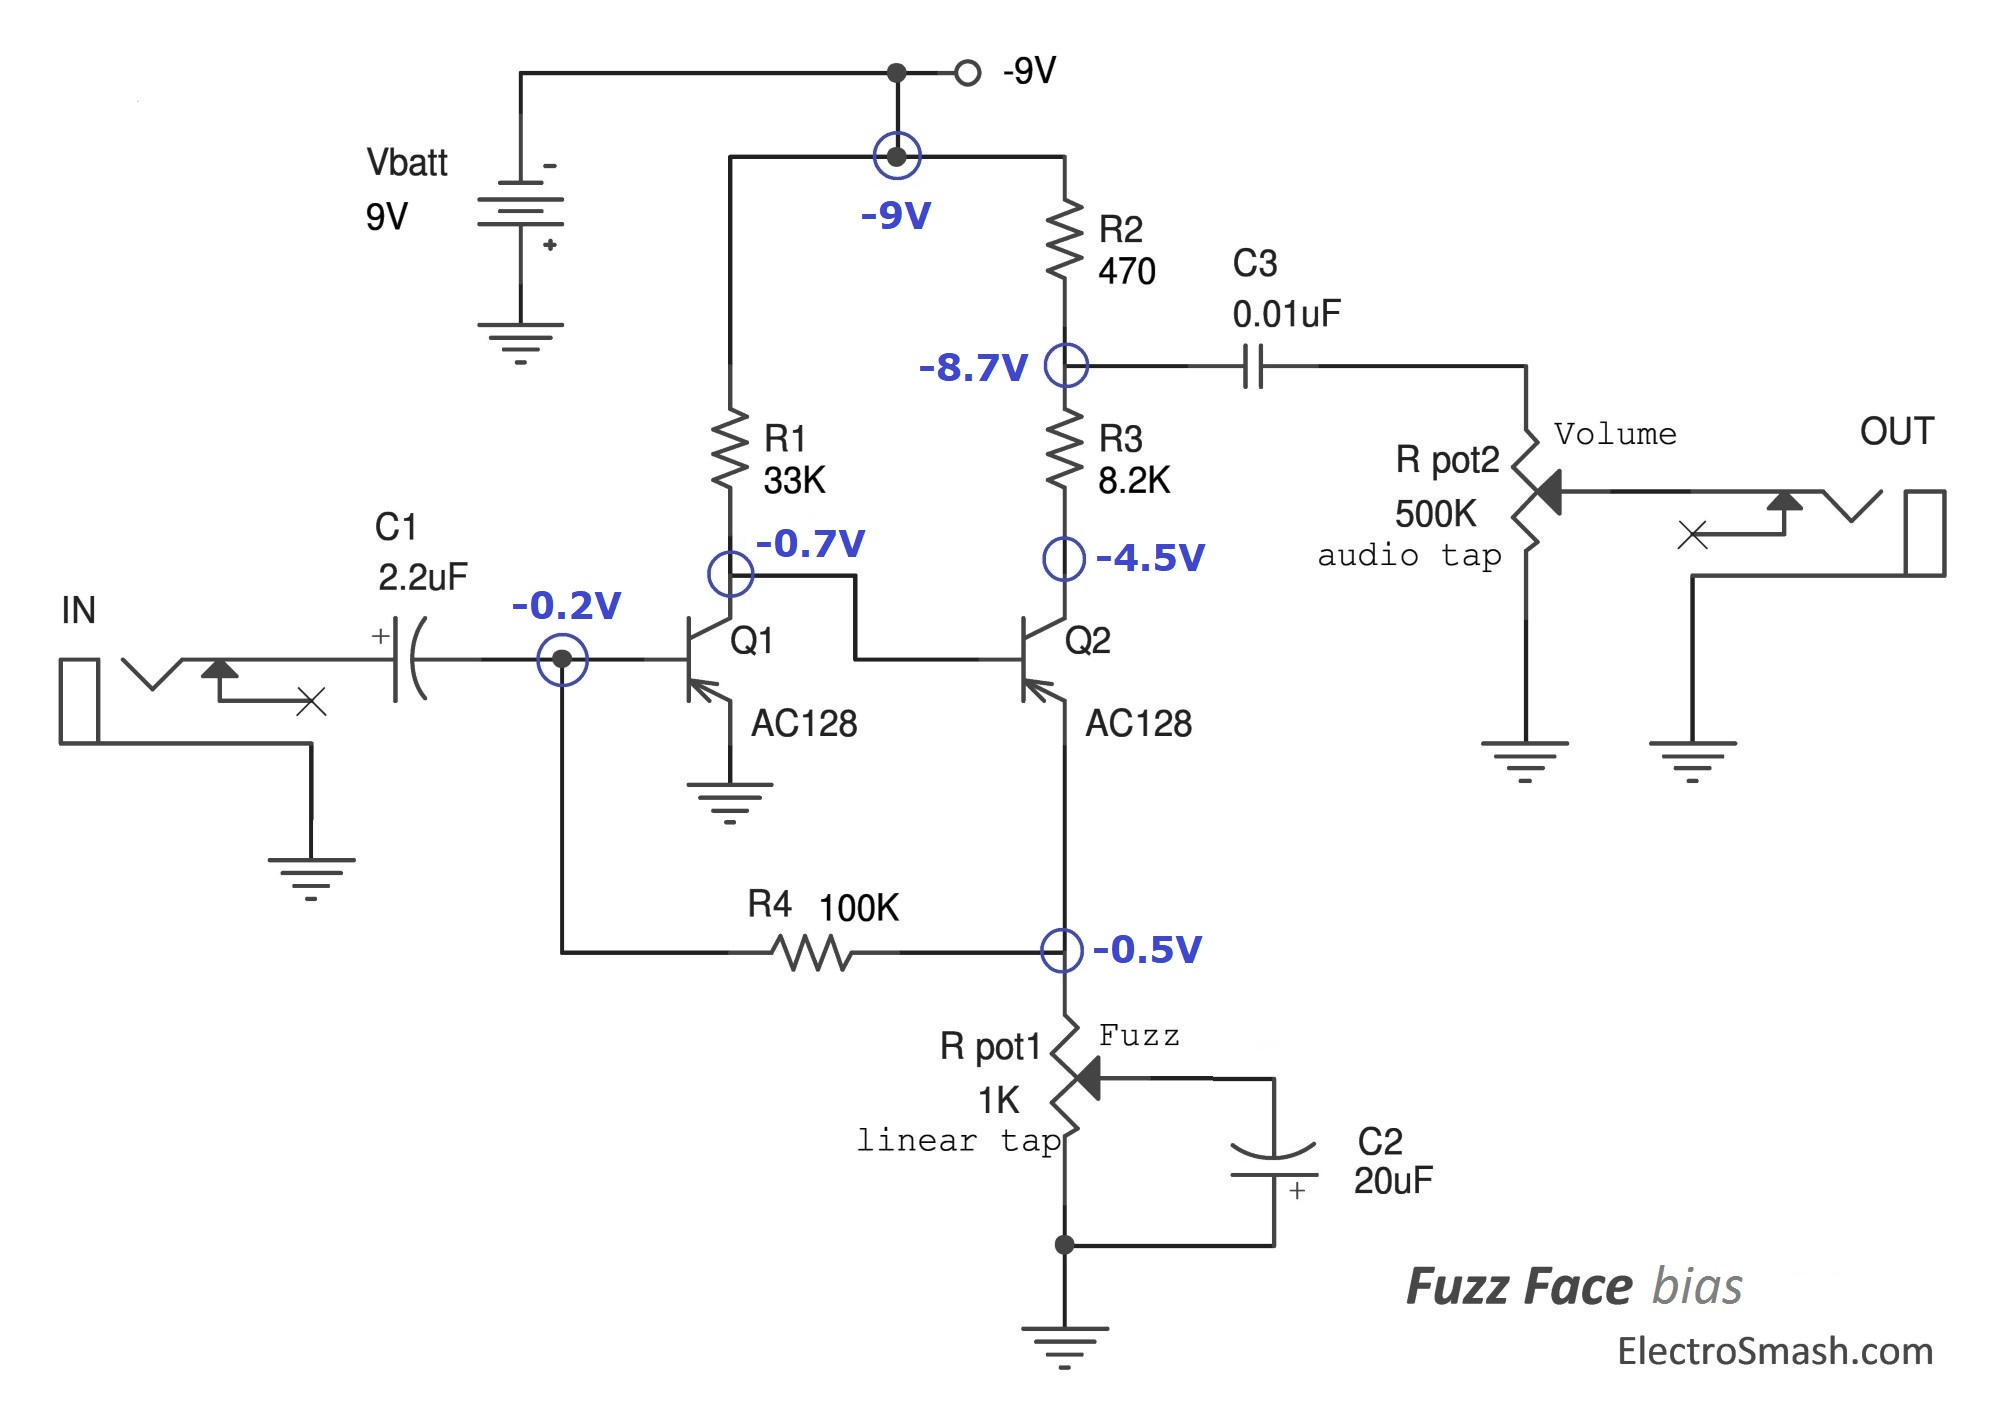 ElectroSmash - Fuzz Face ysis on marshall schematic, compressor schematic, simple tube amp schematic, super fuzz schematic, harmonic percolator schematic, overdrive schematic, tube screamer schematic, wah schematic, tremolo schematic, fuzz pedal schematic, simple fuzz box schematic, muff fuzz schematic, tube driver schematic, distortion schematic, mutron iii schematic, ts9 schematic, 3 pole double throw switch schematic, solar charge controller schematic, colorsound overdriver schematic, univibe schematic,